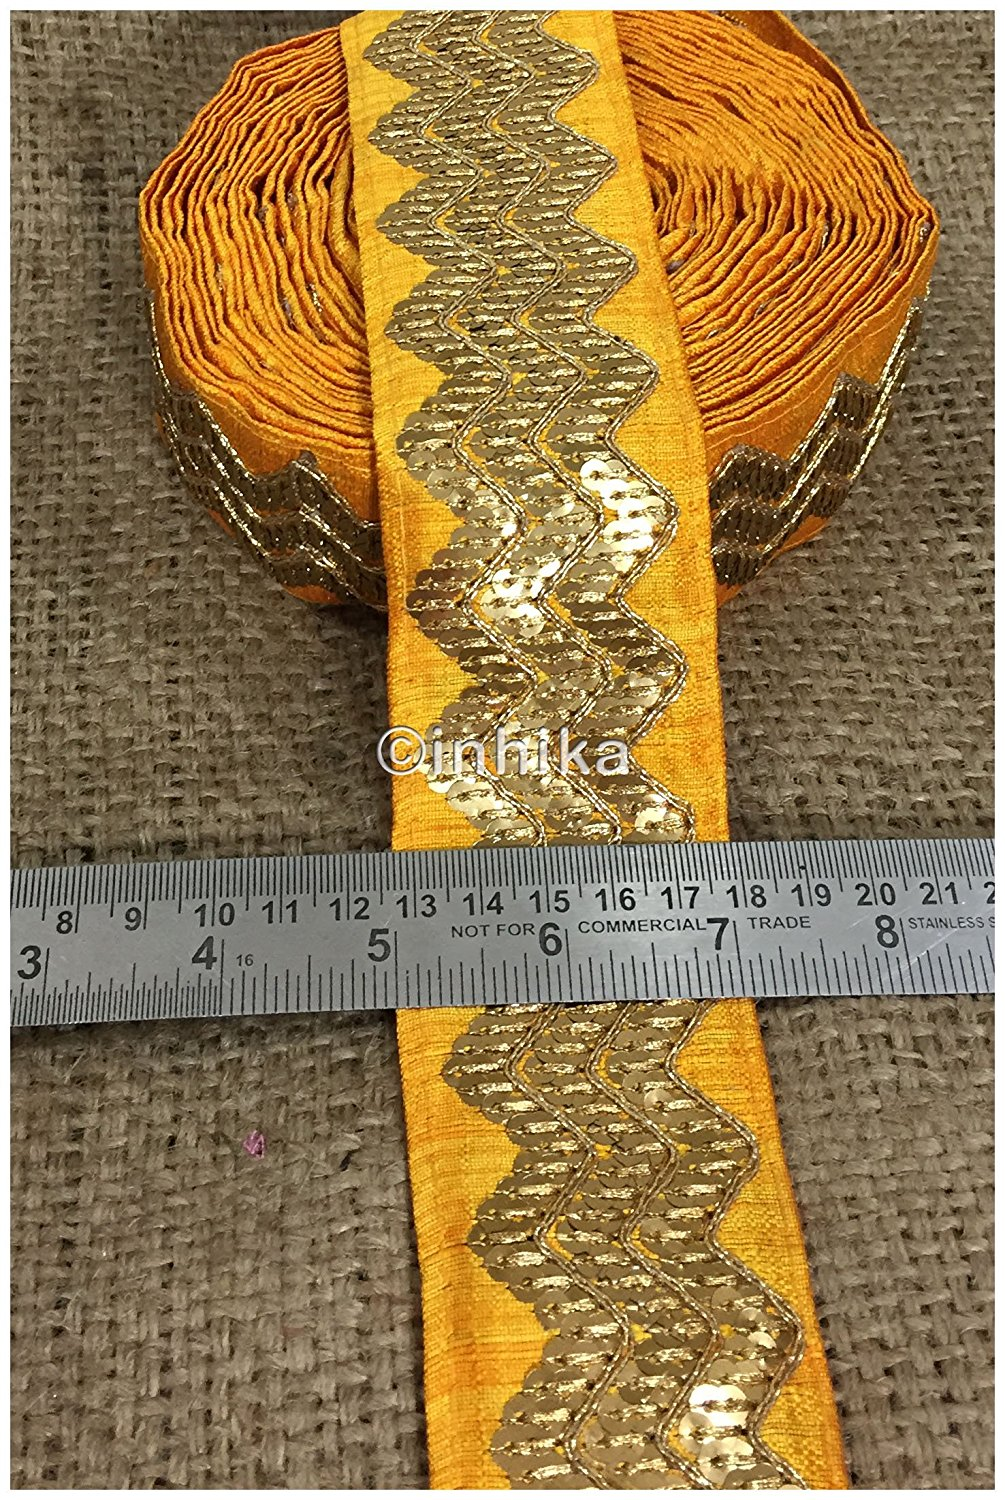 lace trim fabric trims and accessories used in garment industry Yellow, Embroidery, Sequins, 3 Inch Wide material Cotton Mix, Dupion